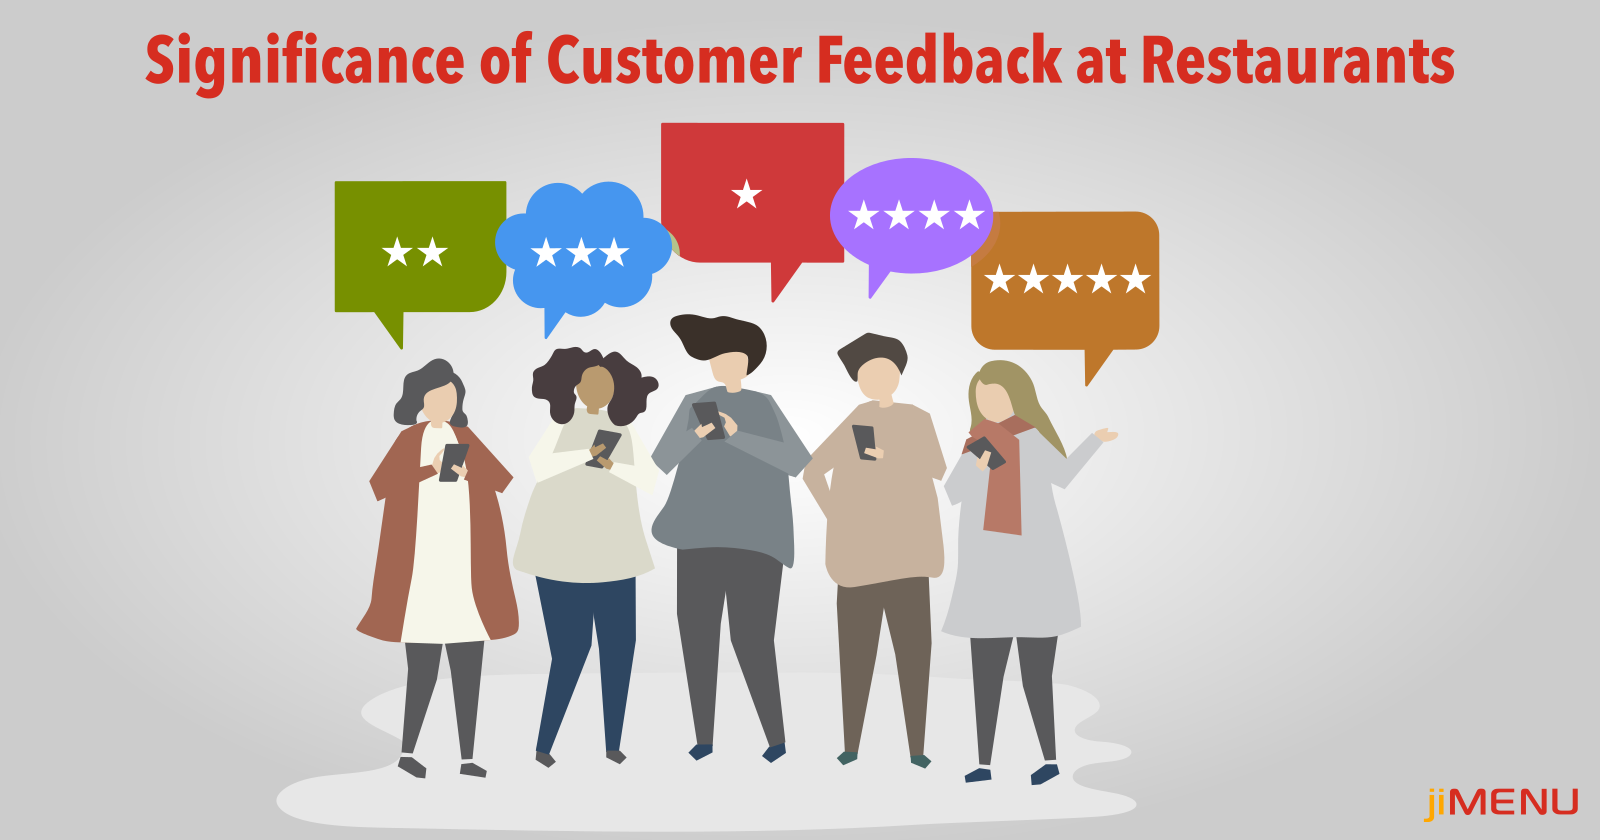 Significance of Customer Feedback at Restaurants